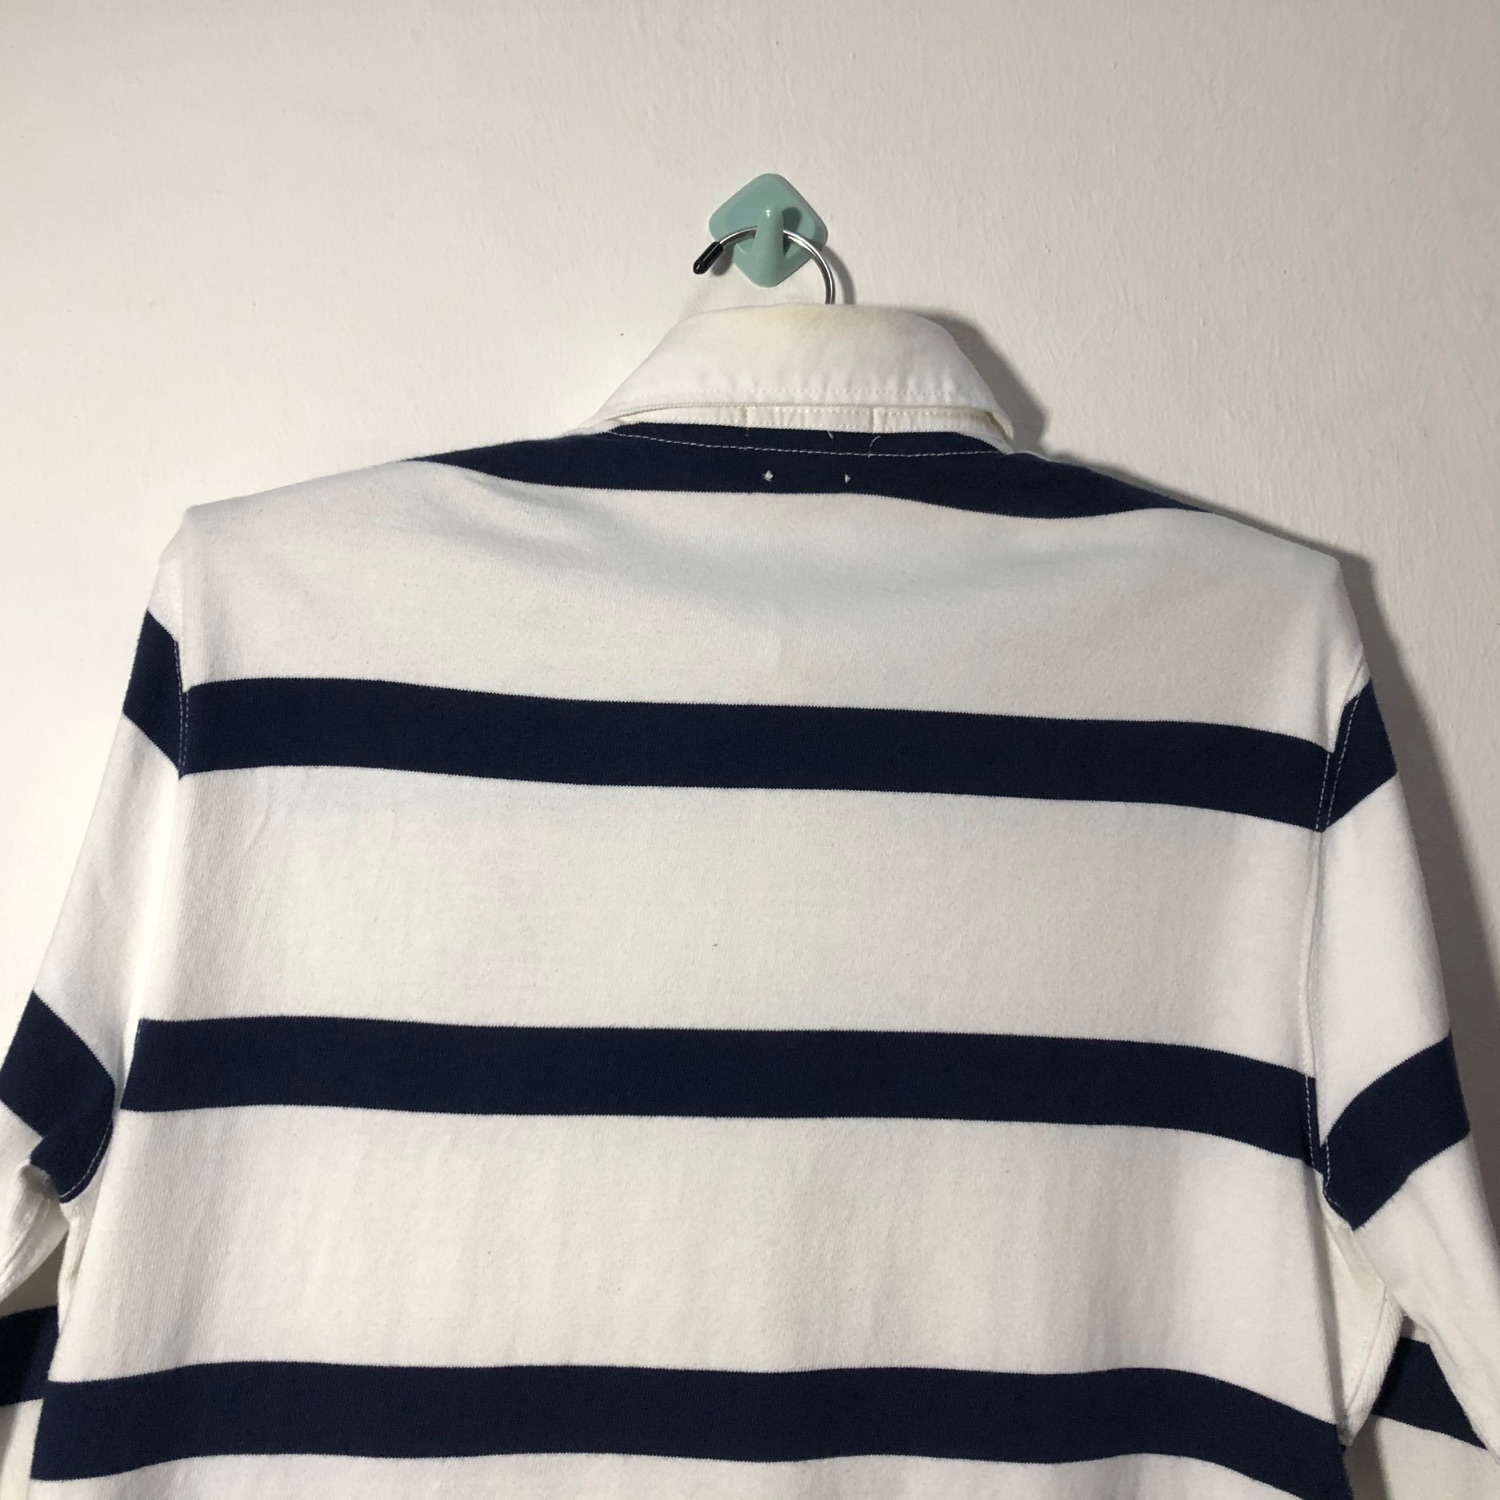 Vintage Polo Ralph Lauren Rugby Shirt Striped 1990